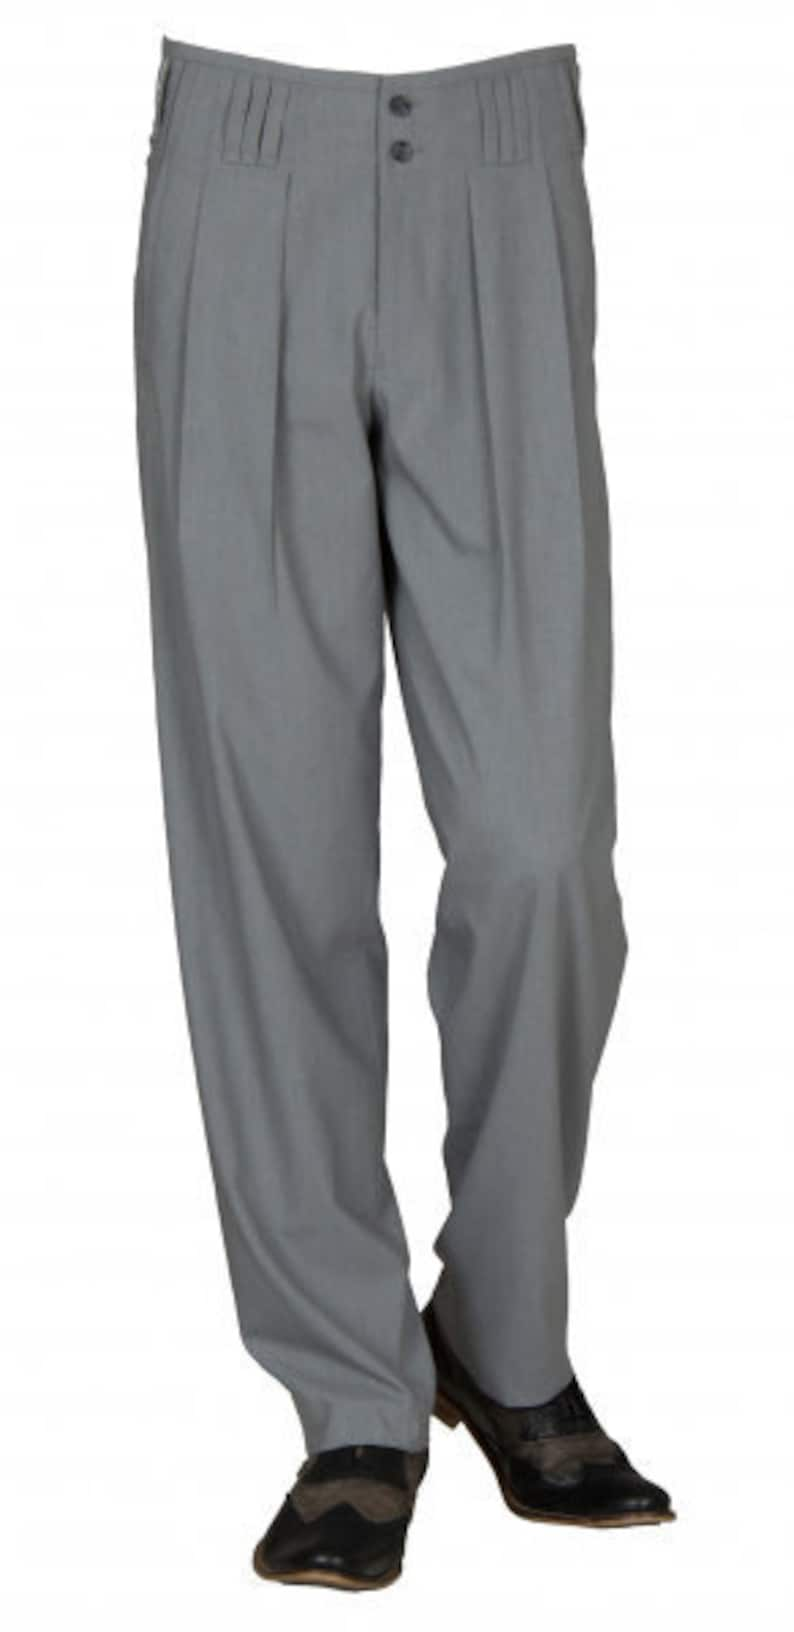 1950s Men's Pants, Trousers, Shorts | Rockabilly Jeans, Greaser Styles Waistband pants in grey model boogie retro vintage style business suit pants in cotton blend with extra wide cut leg. $91.69 AT vintagedancer.com